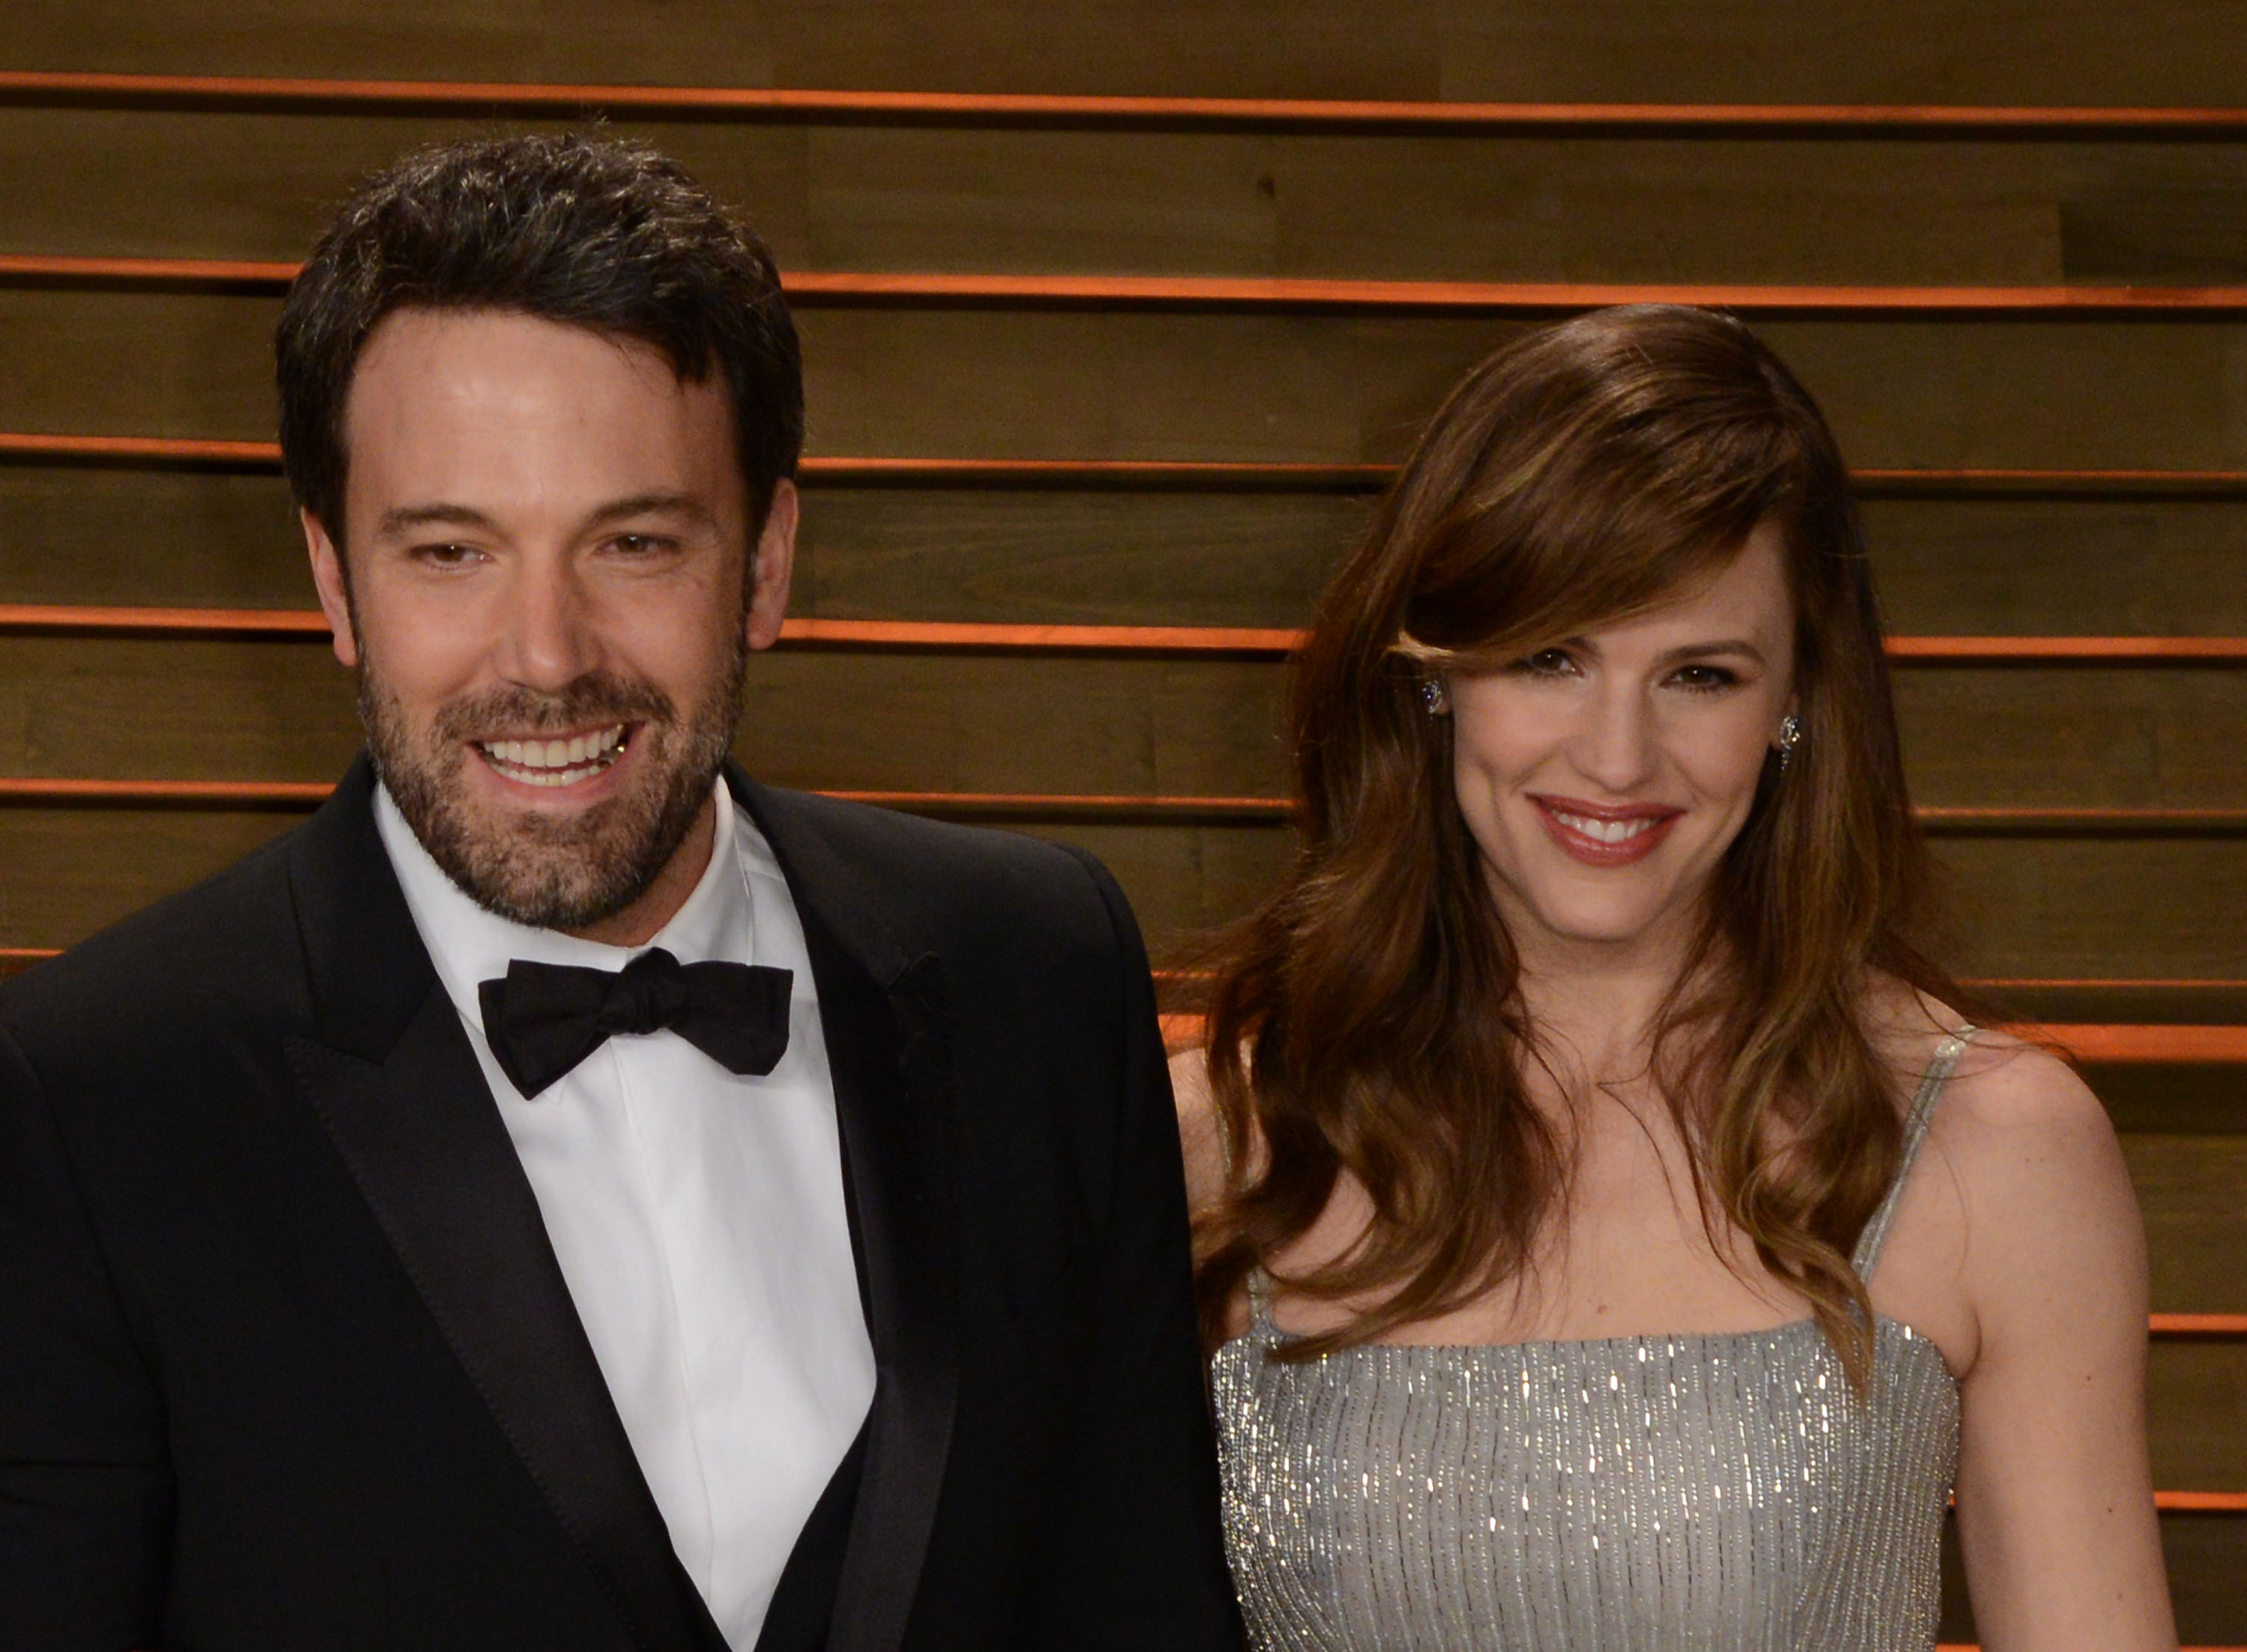 jennifer-garner-ben-affleck-fun-getty